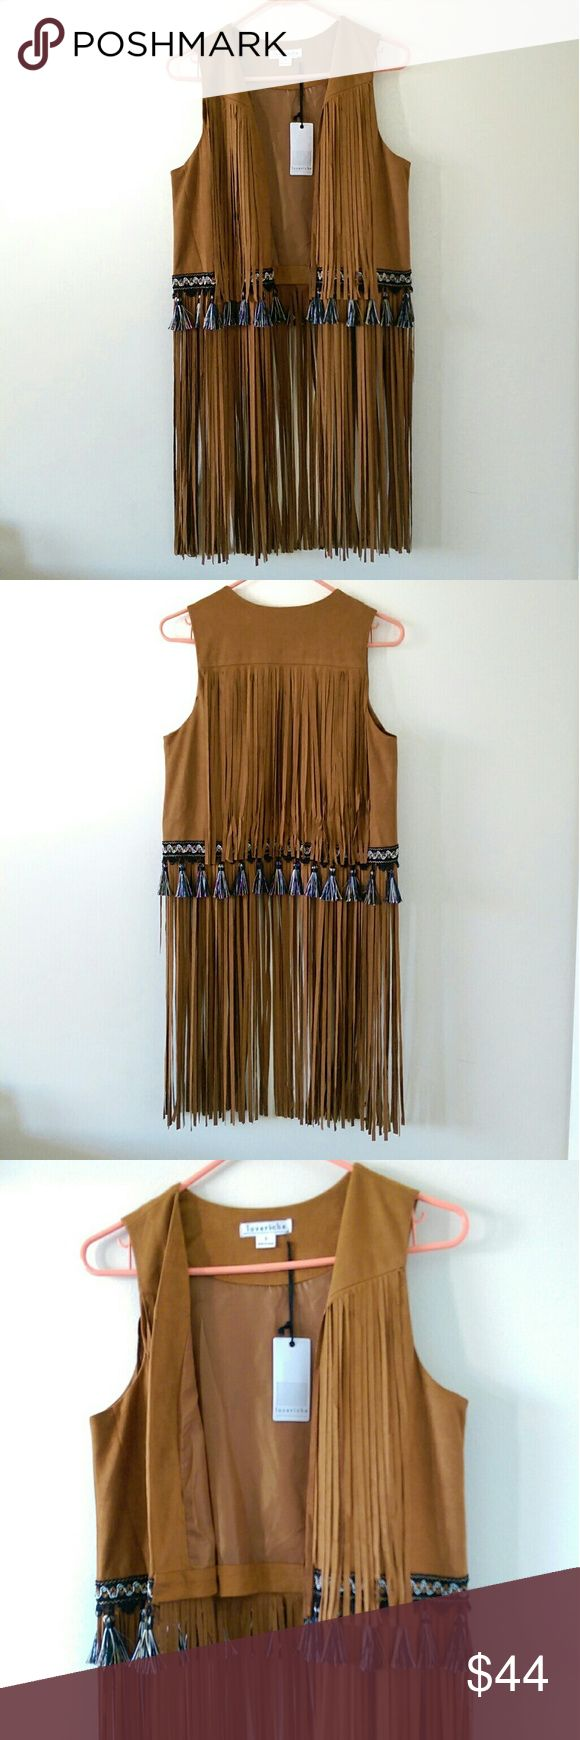 Boho long fringe festival vest Stay festival ready in this amazing fringe vest with tassels and embroidered details. Brand new with tags. Vest bodice is lined inside. Super fun for the summer. Excellent condition, only flaw is shown in last picture, missing one fringe tassel. Cannot see when worn. Loveriche Jackets & Coats Vests